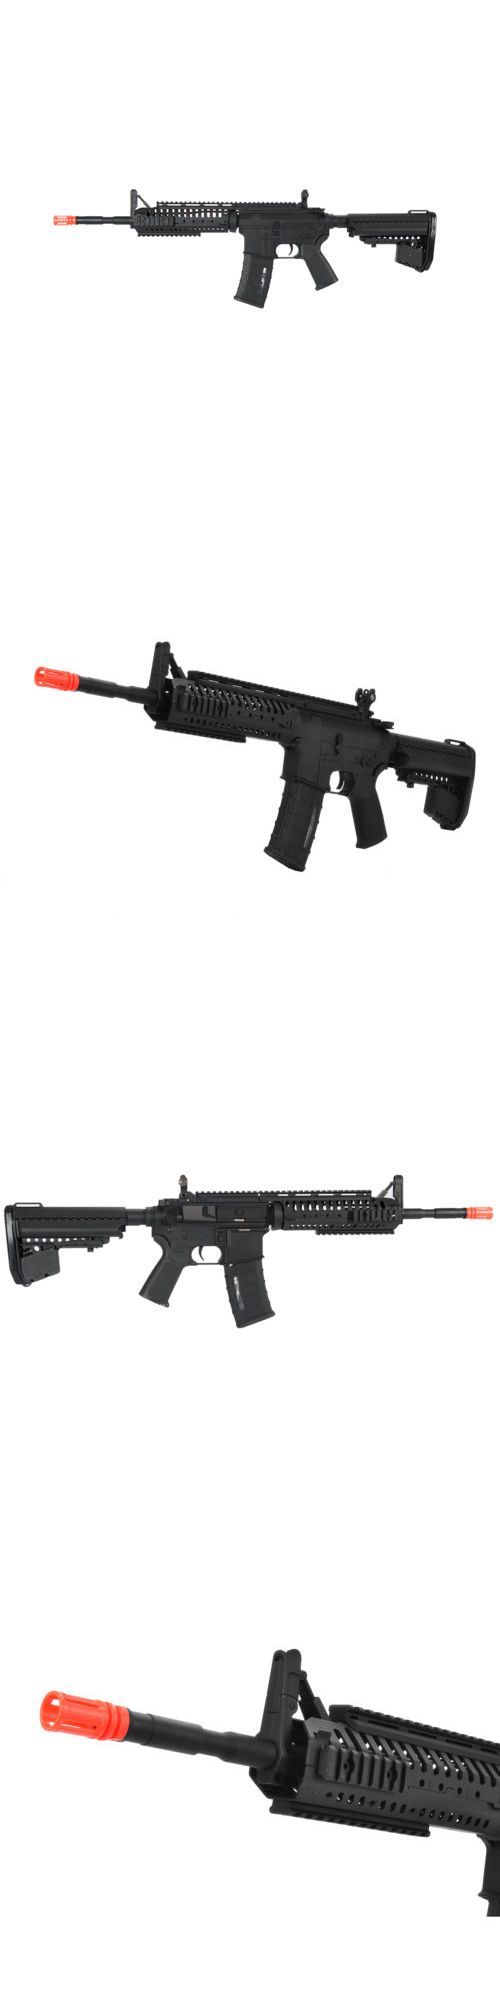 Other Electric Airsoft Guns 31684: Airsoft Gun Full Automatic M4 Aandk Rifle 400 Fps Metal Gear Aeg Ris Iu-Casb-Nb BUY IT NOW ONLY: $236.31